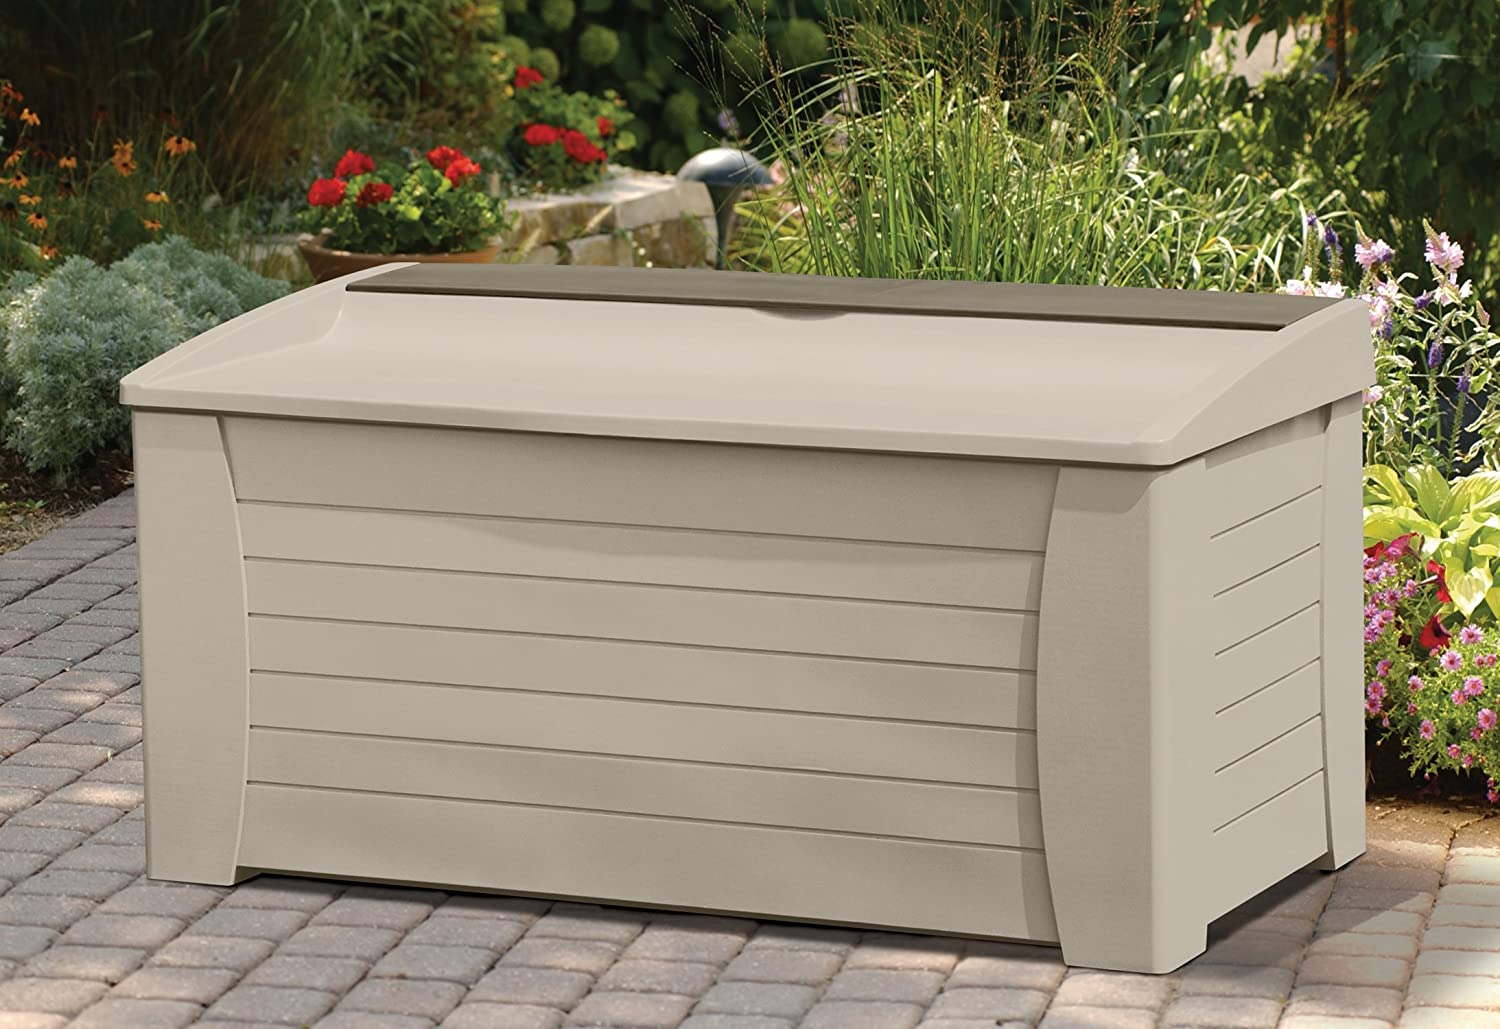 hayneedle bins suncast furniture backyard seat bench outdoor patio yard with exterior storage pool benches bin